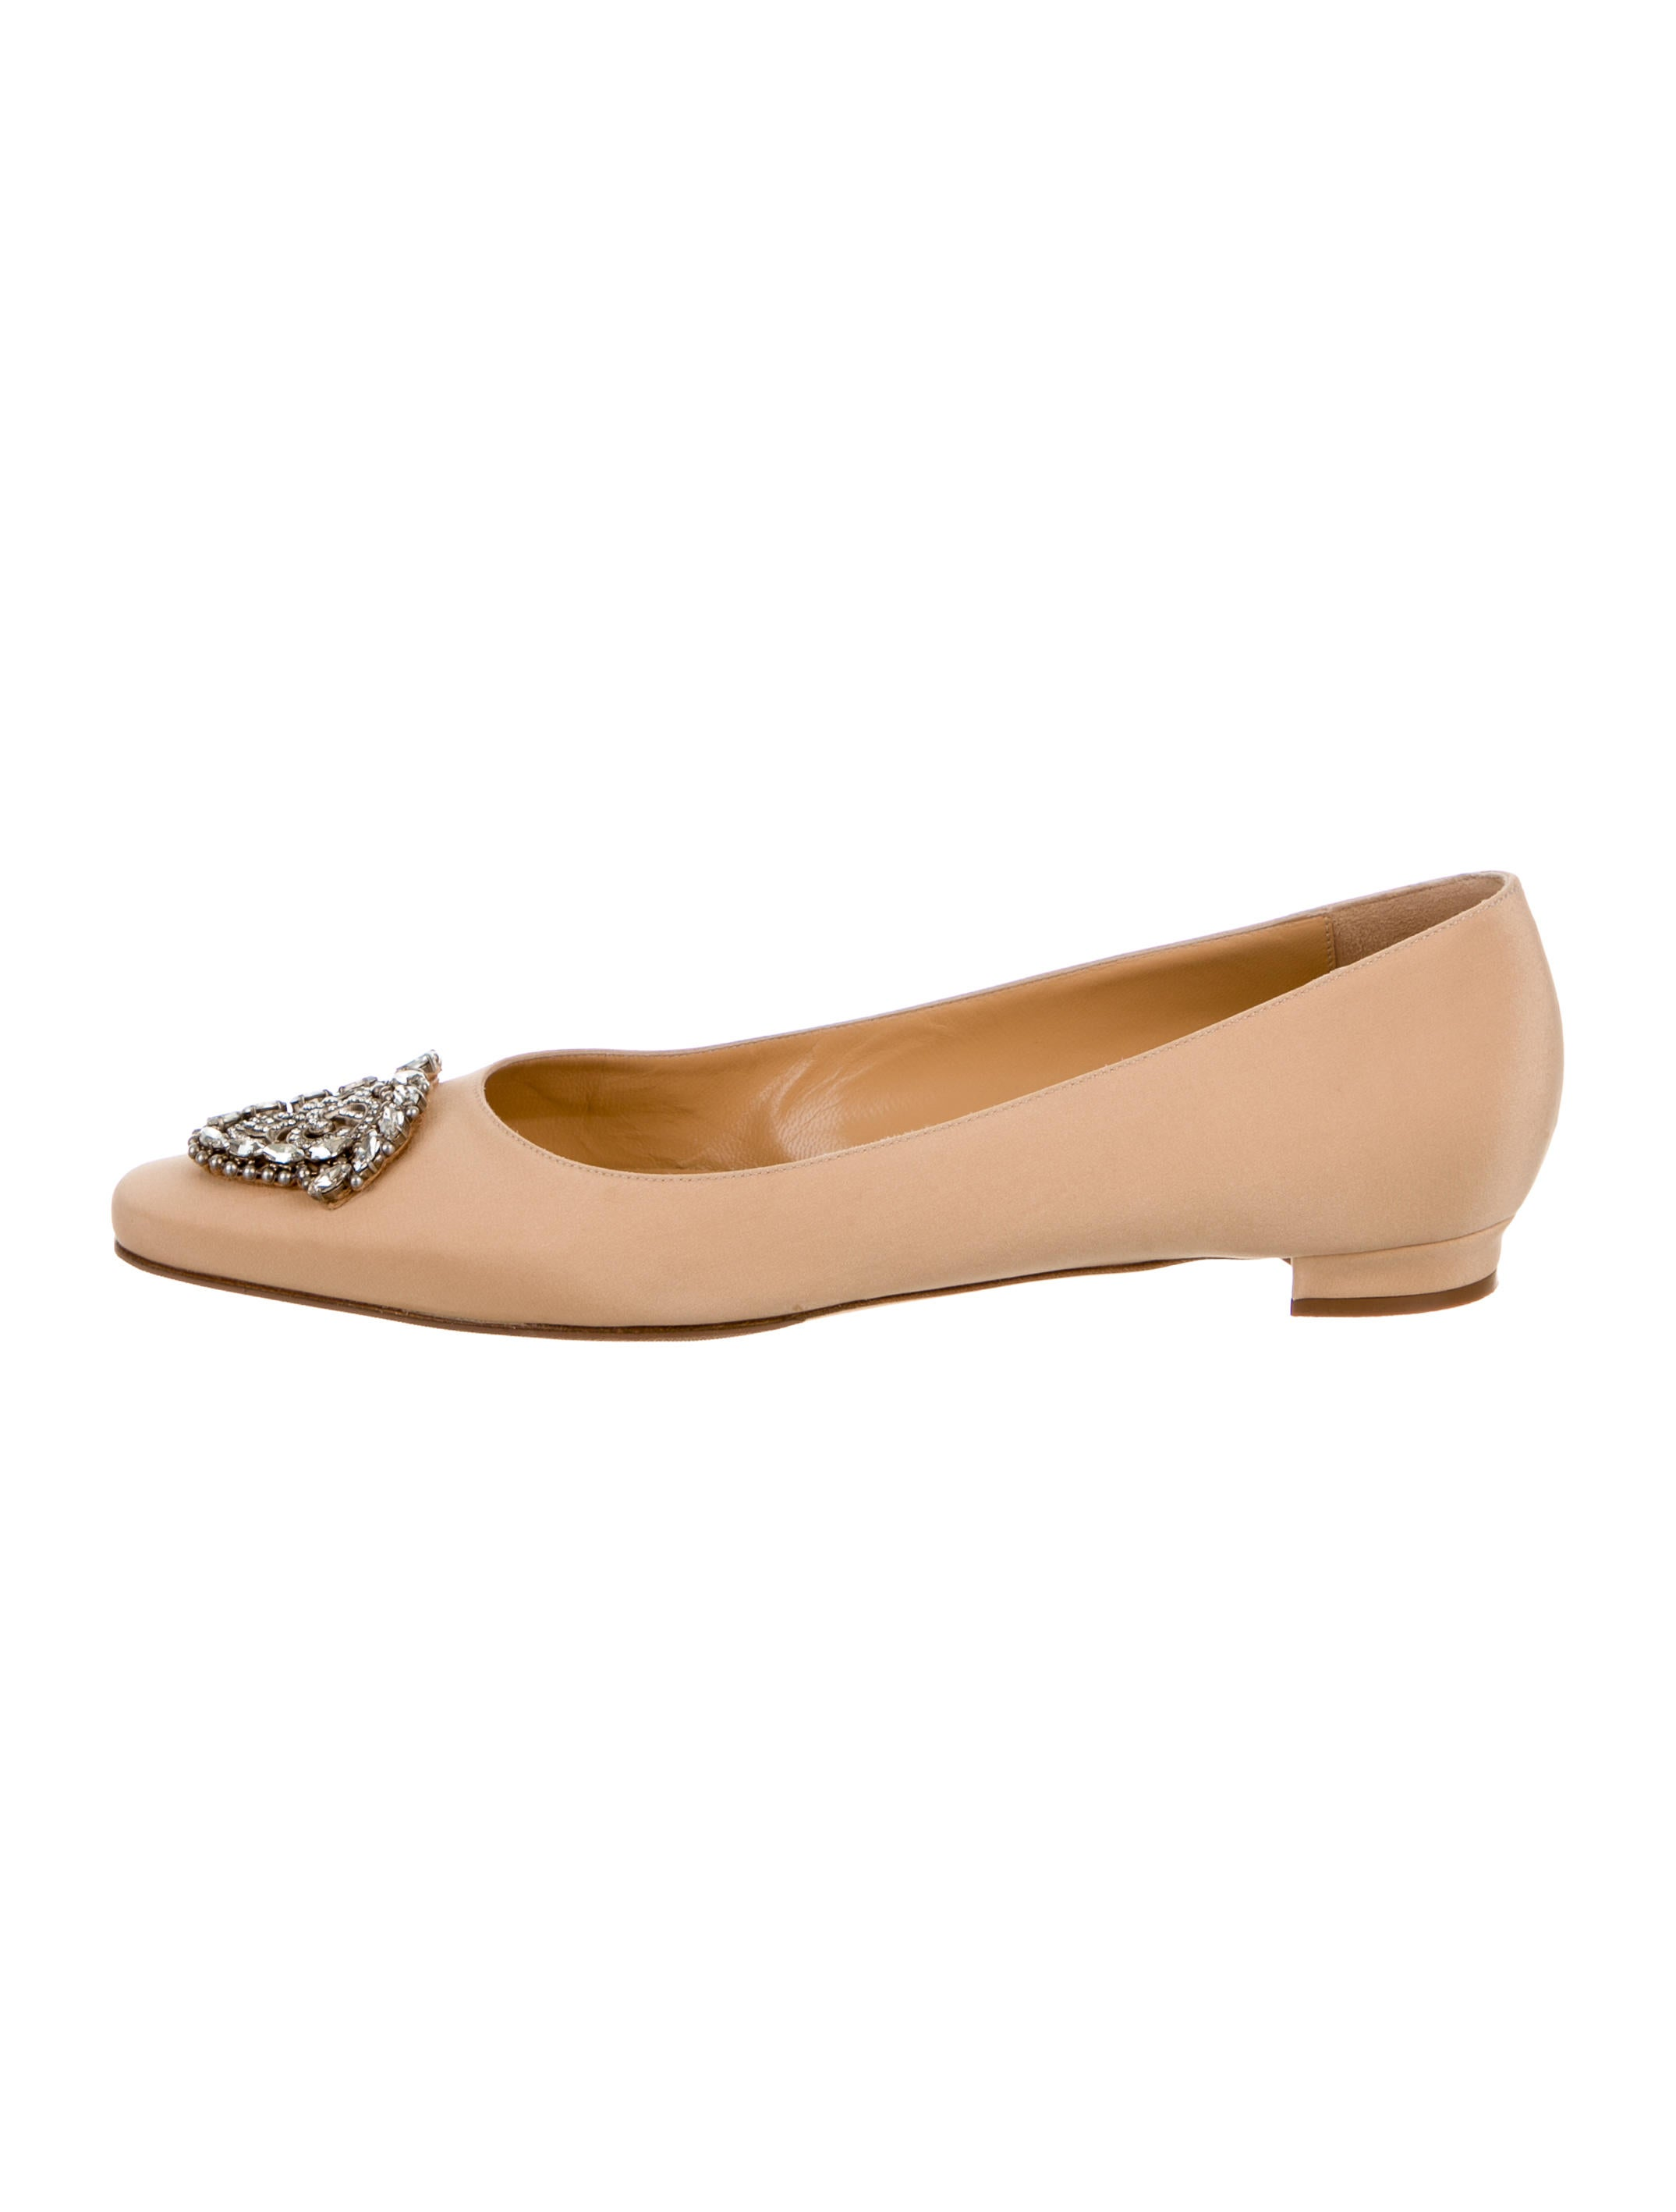 Manolo blahnik okkato satin flats shoes moo61484 the for Shoes by manolo blahnik